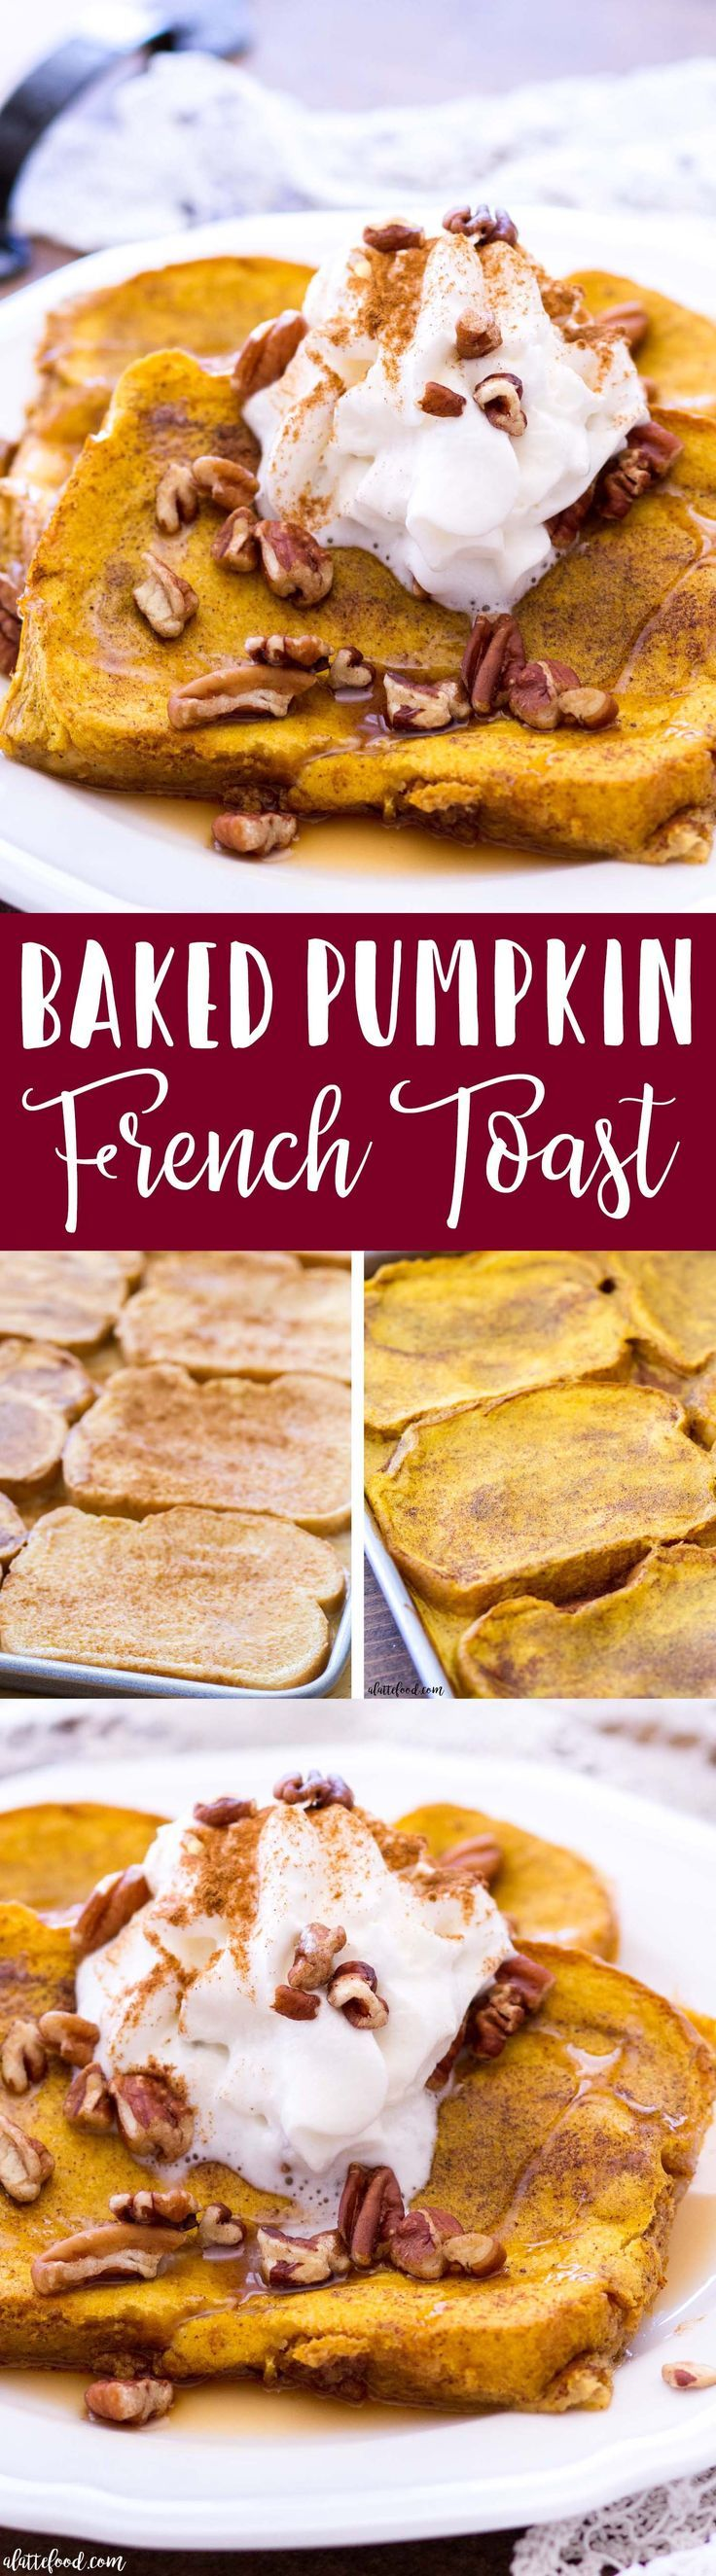 This Easy Pumpkin French Toast Recipe is baked in the oven, making this the perfect fall breakfast! This Pumpkin French Toast Recipe uses thick-cut bread, and is soaked in a rich pumpkin custard and baked to perfection! #pumpkin #fall #breakfast #recipe #dessert